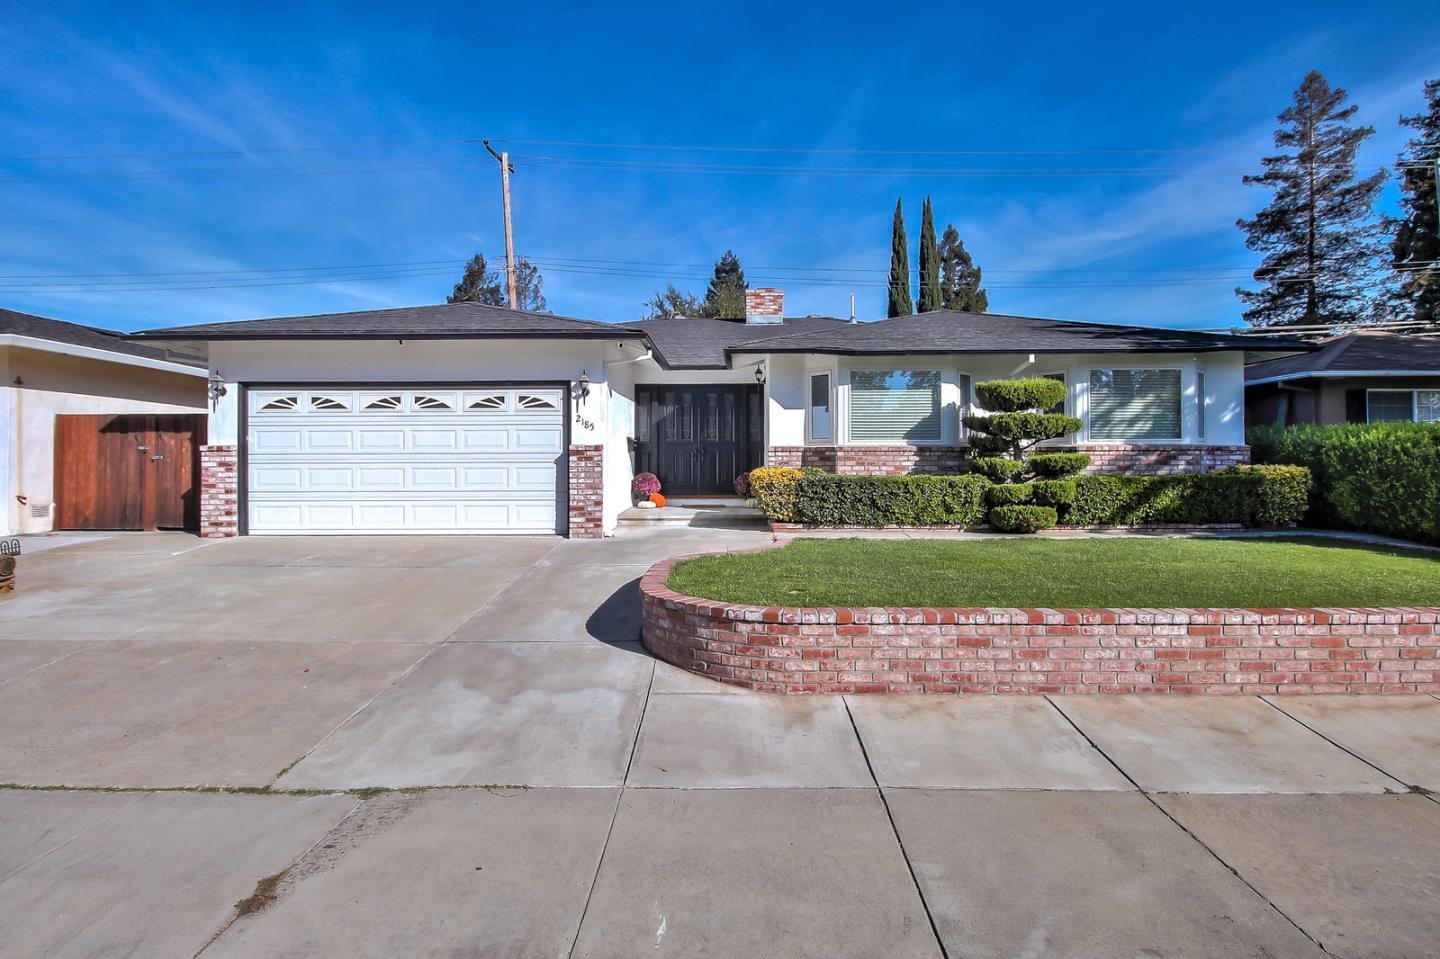 Detail Gallery Image 1 of 1 For 2185 Cabrillo Ave, Santa Clara, CA, 95050 - 3 Beds   2 Baths